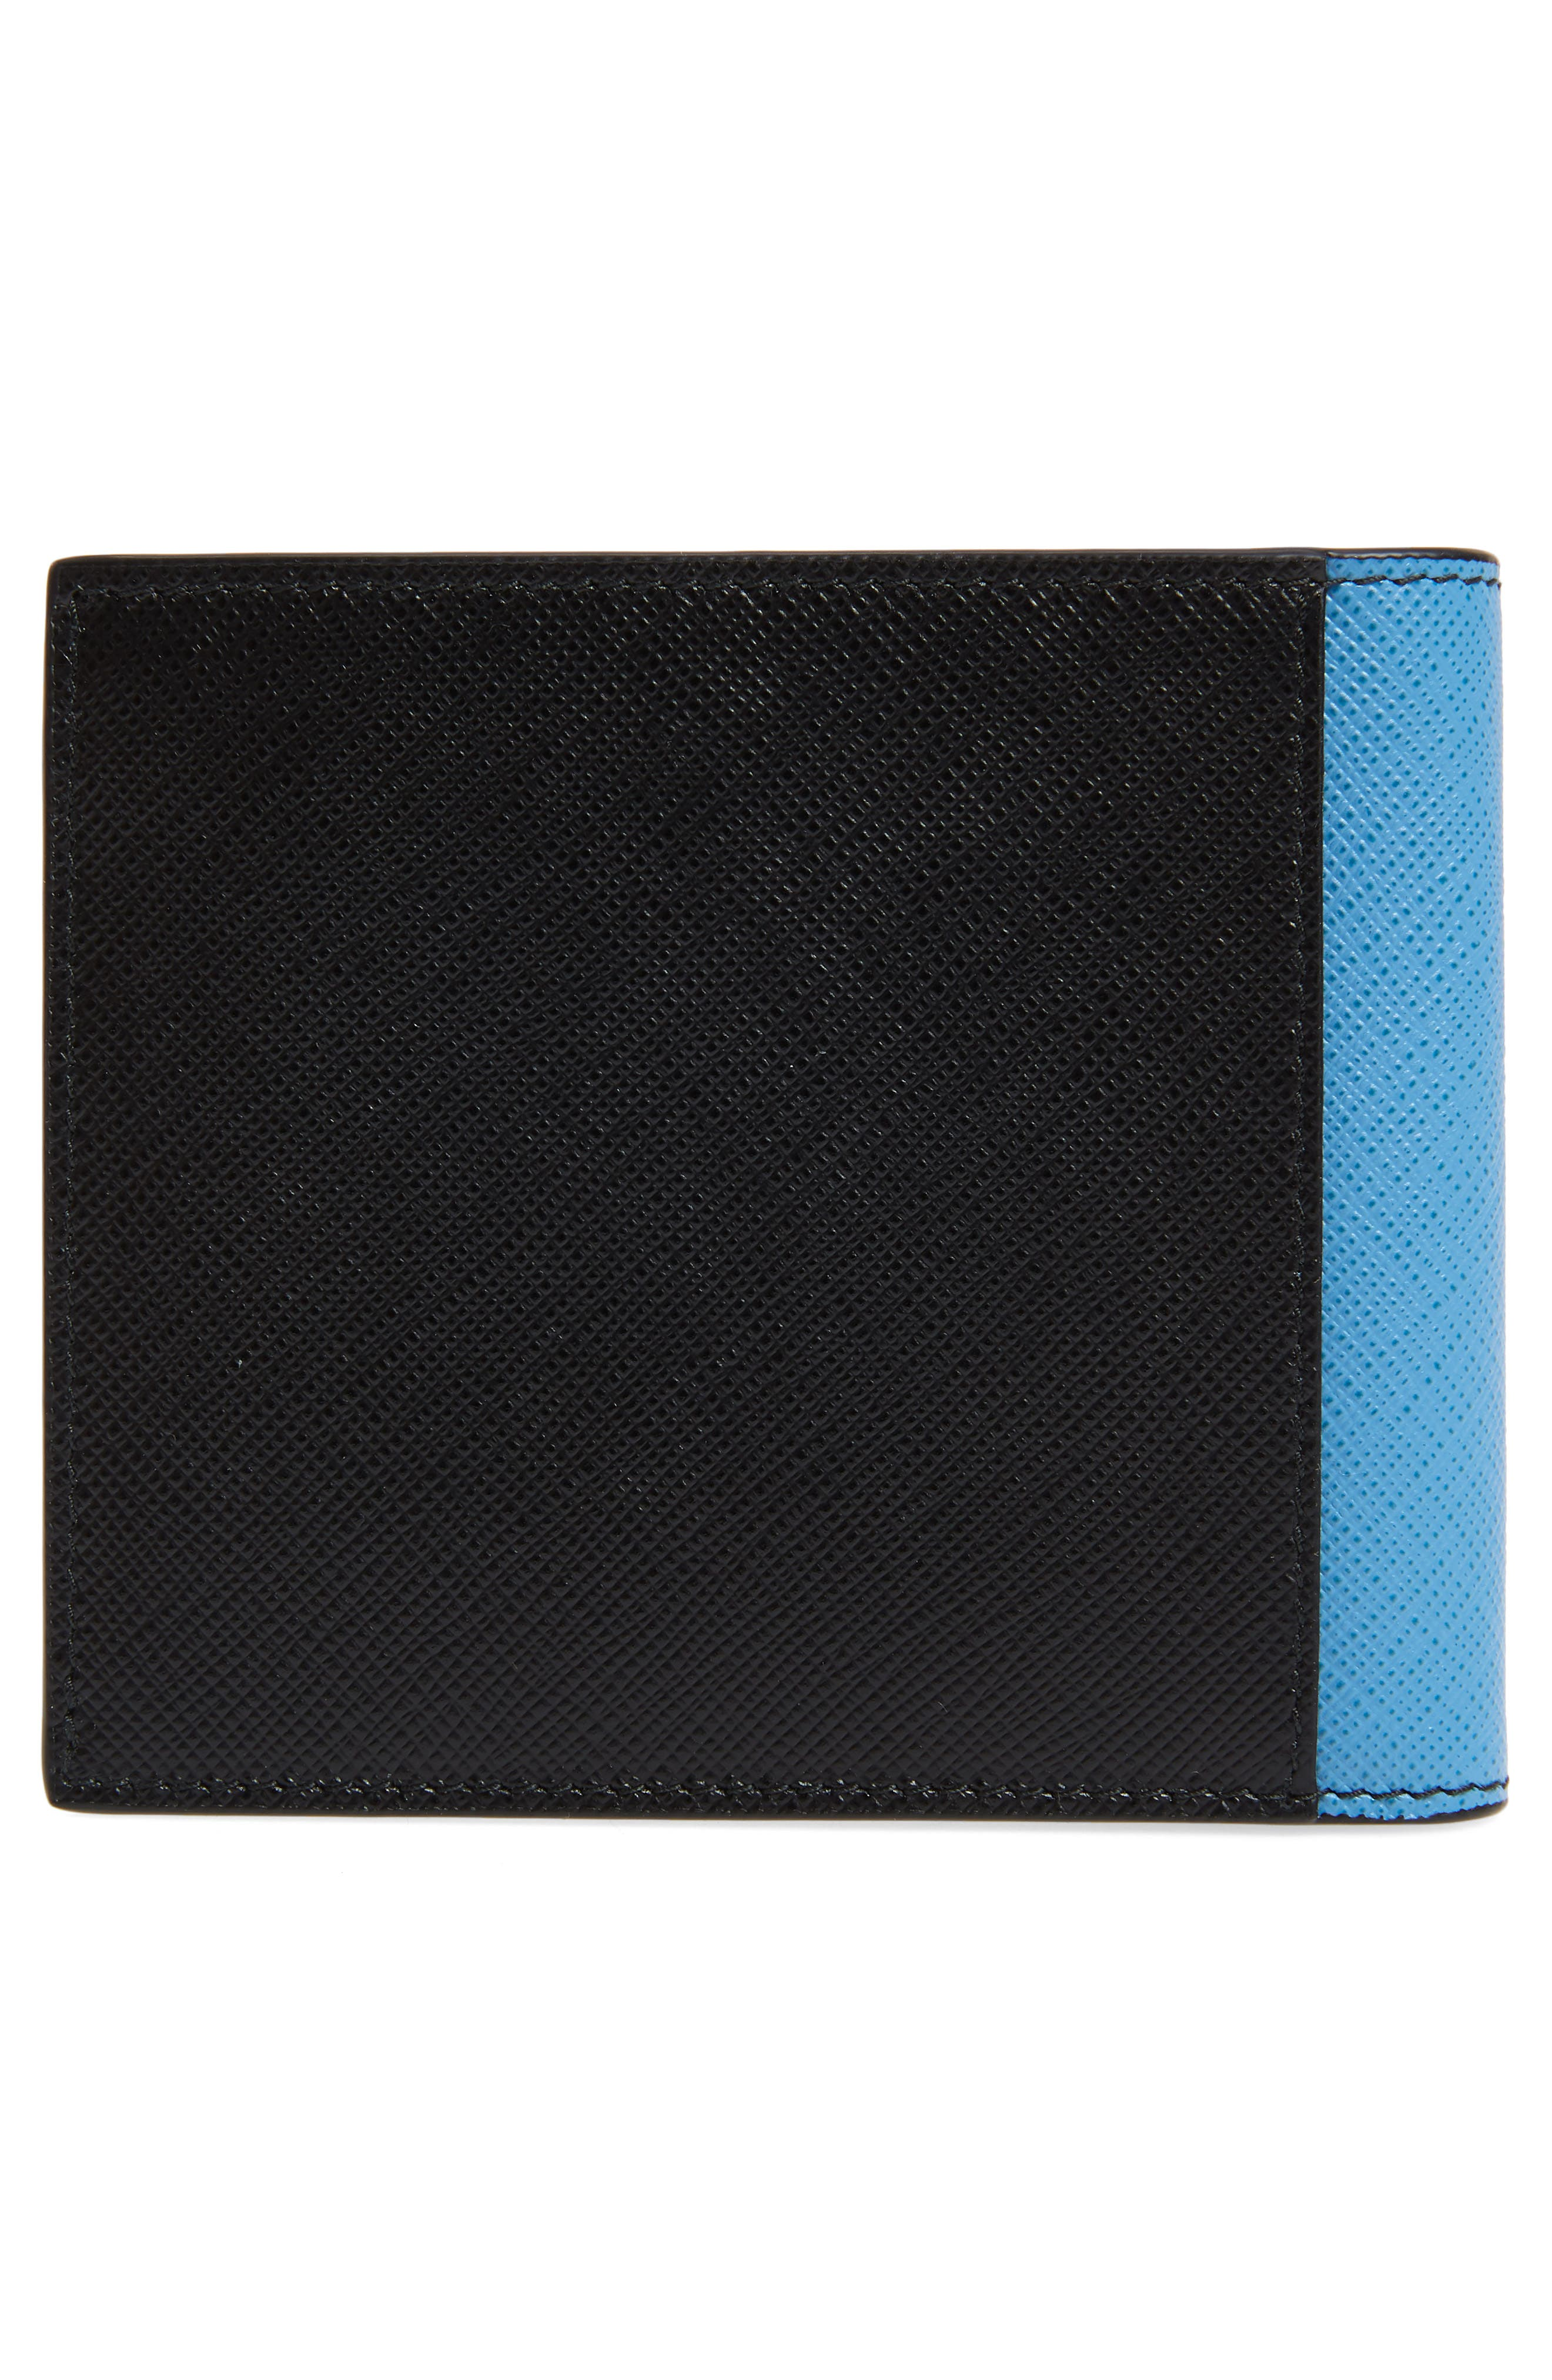 Saffiano Leather Patch Bifold Wallet,                             Alternate thumbnail 3, color,                             BLACK